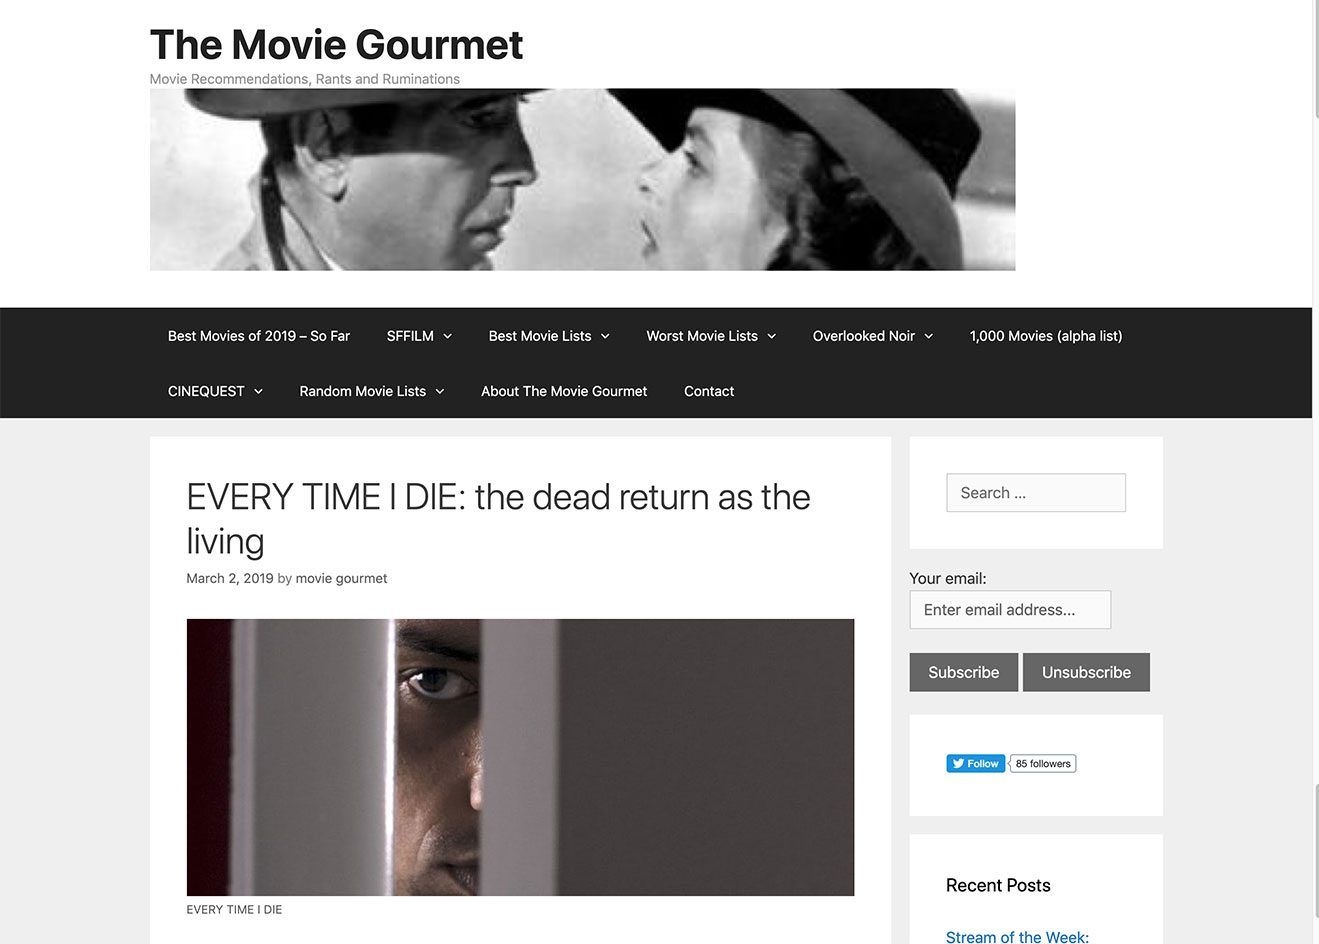 Every Time I Die The Movie Gourmet